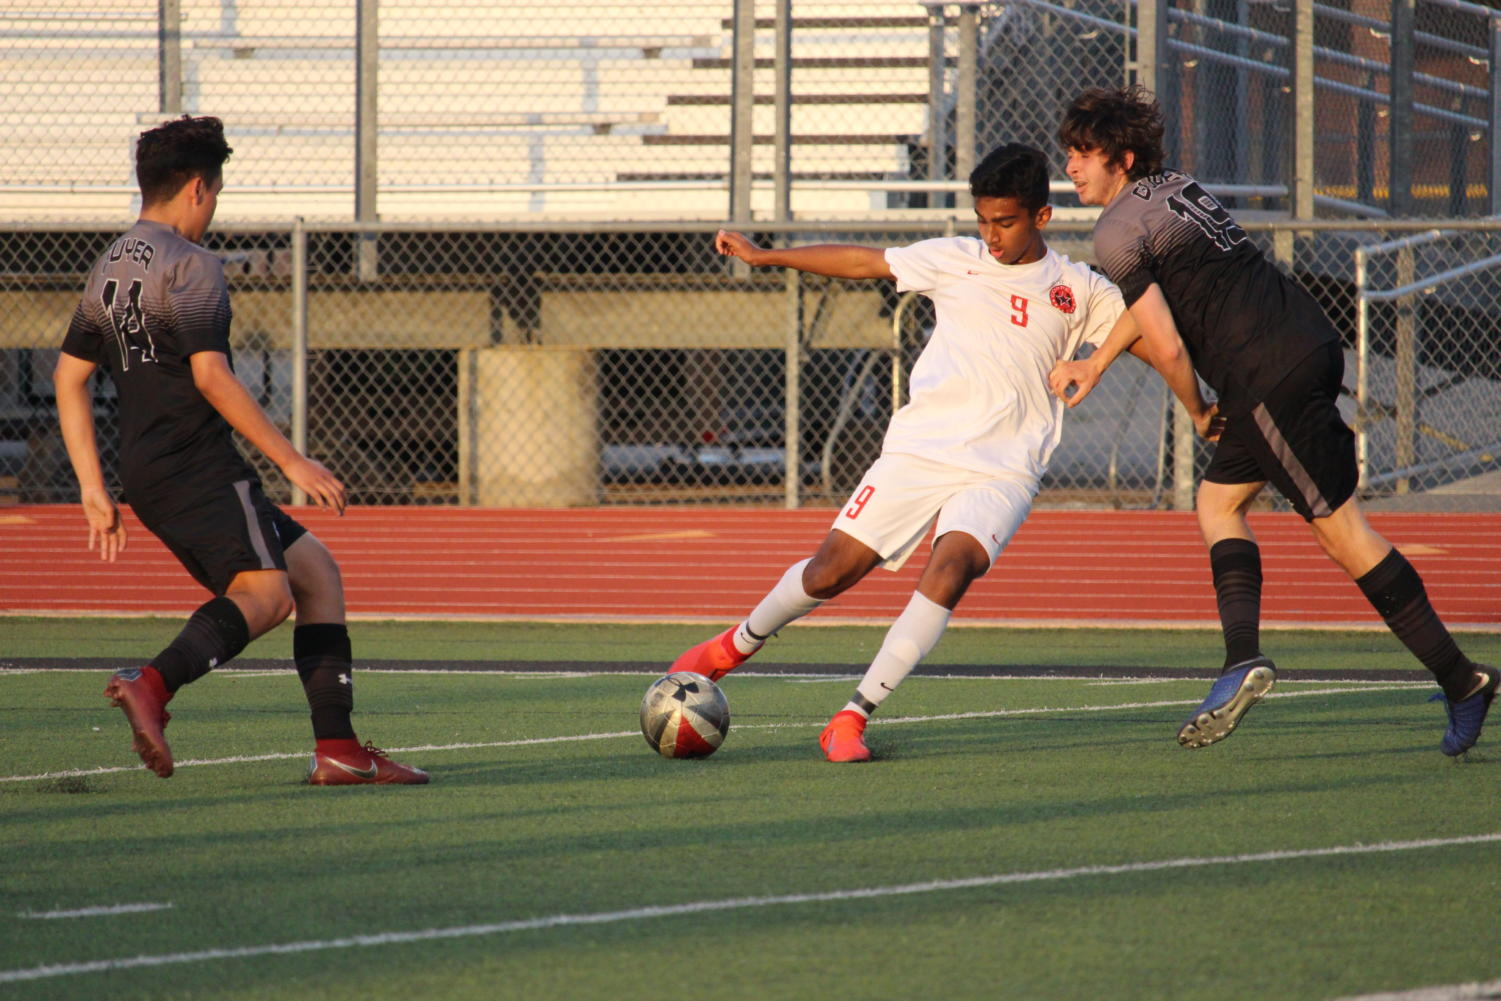 Coppell+junior+forward+Tom+Vazhekatt+passes+the+ball+upfield+during+the+match+against+Denton+Guyer+on+Friday+at+Falcon+Stadium+at+Lake+Dallas.+After+a+scoreless+regulation+and+two+overtime+periods%2C+Coppell+won%2C++0-0+%284-3%29%2C+in+the+Class+6A+Region+I+bi-district+match.+